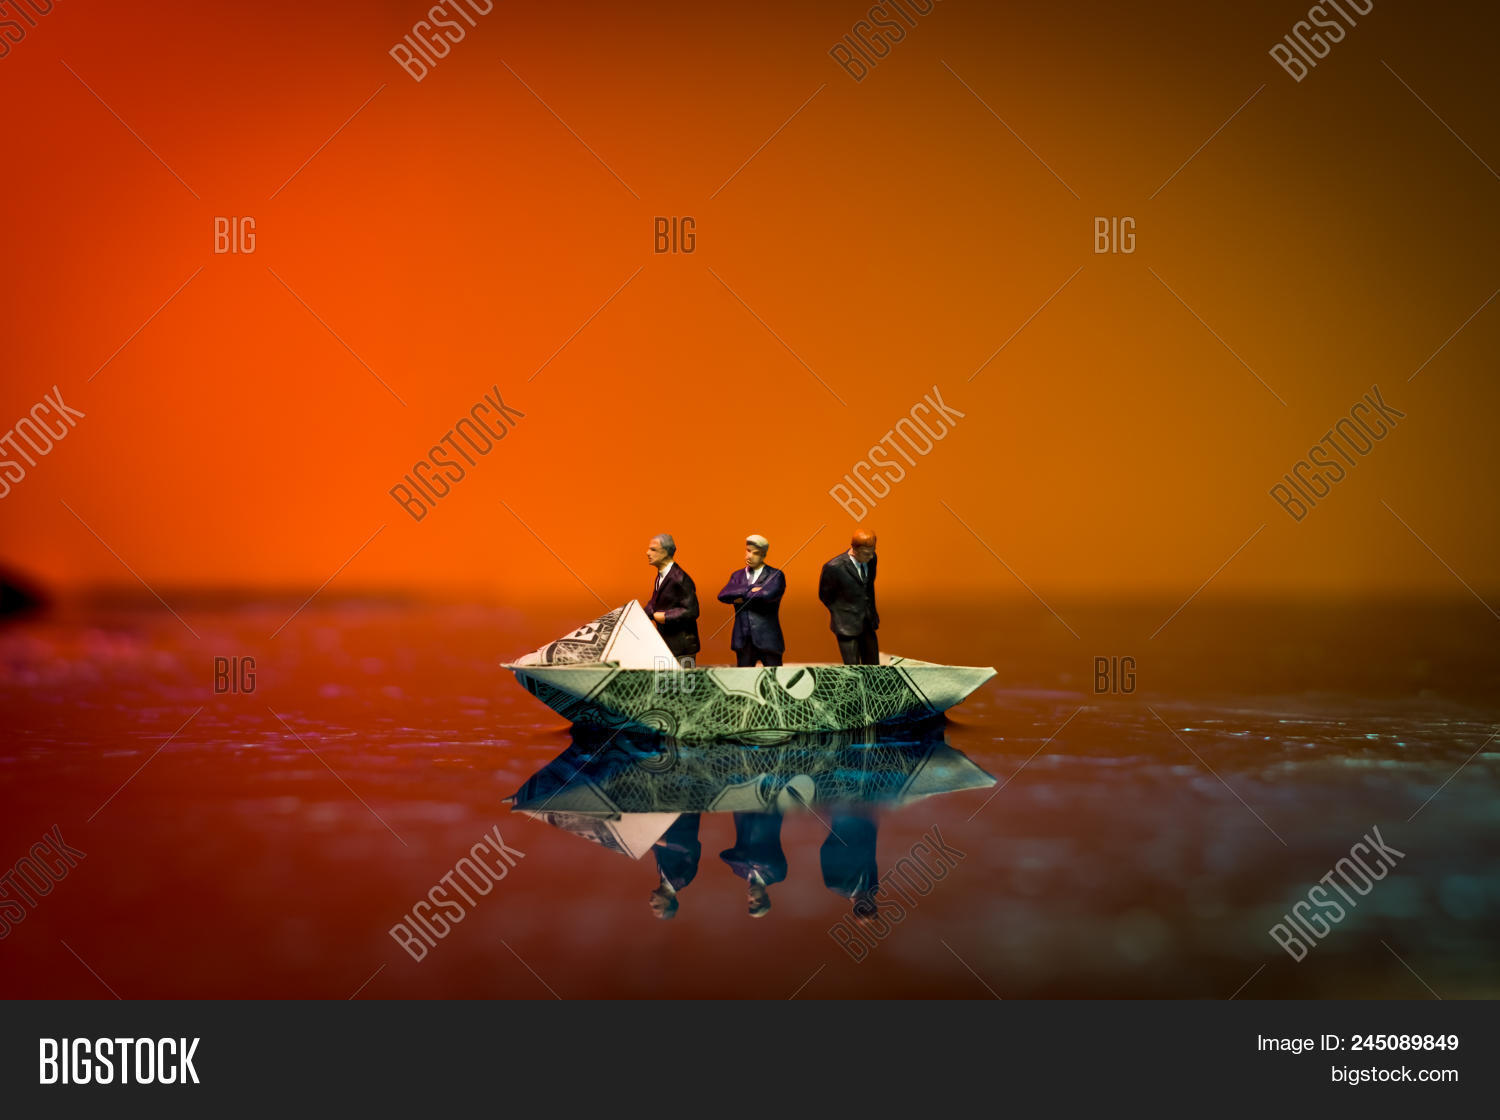 Origami Boat Made Of Dollar Bill Sails Into The Blue Stock Photo ... | 1120x1500